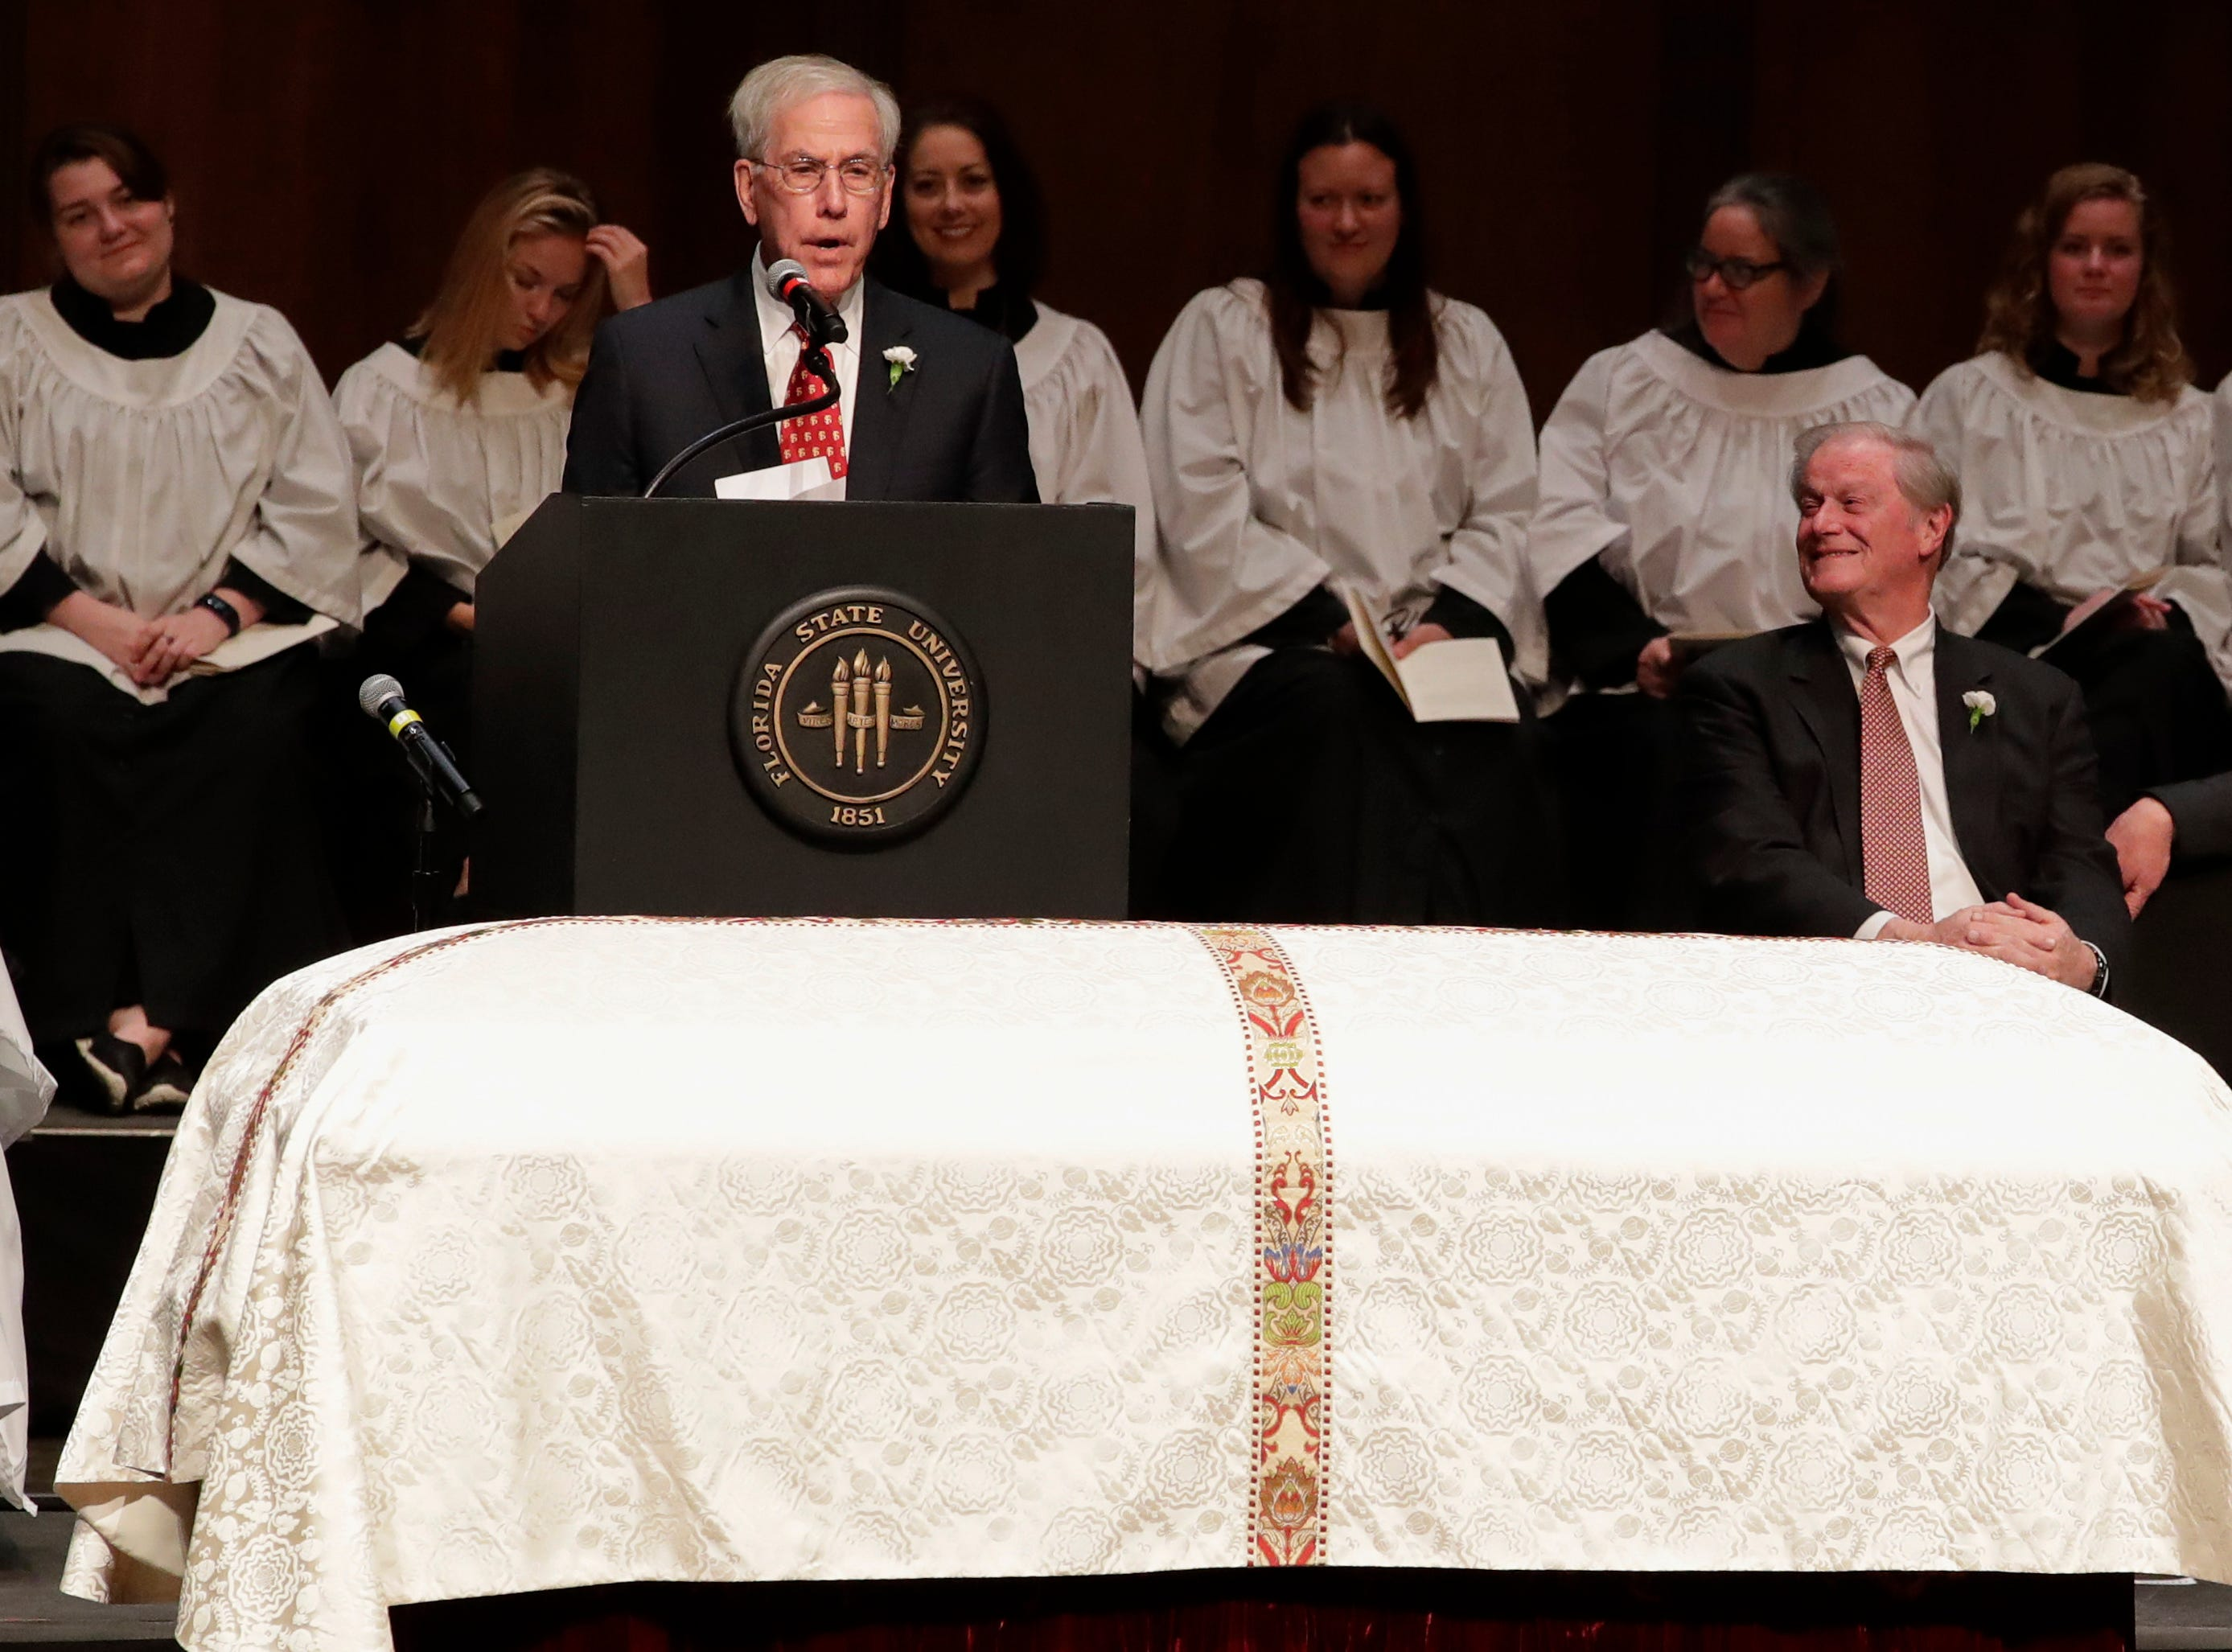 Jim Smith shares his words of remembrance during a funeral service for Florida State University President Emeritus T.K. Wetherell held at Ruby Diamond Concert Hall Friday, Dec. 21, 2018.